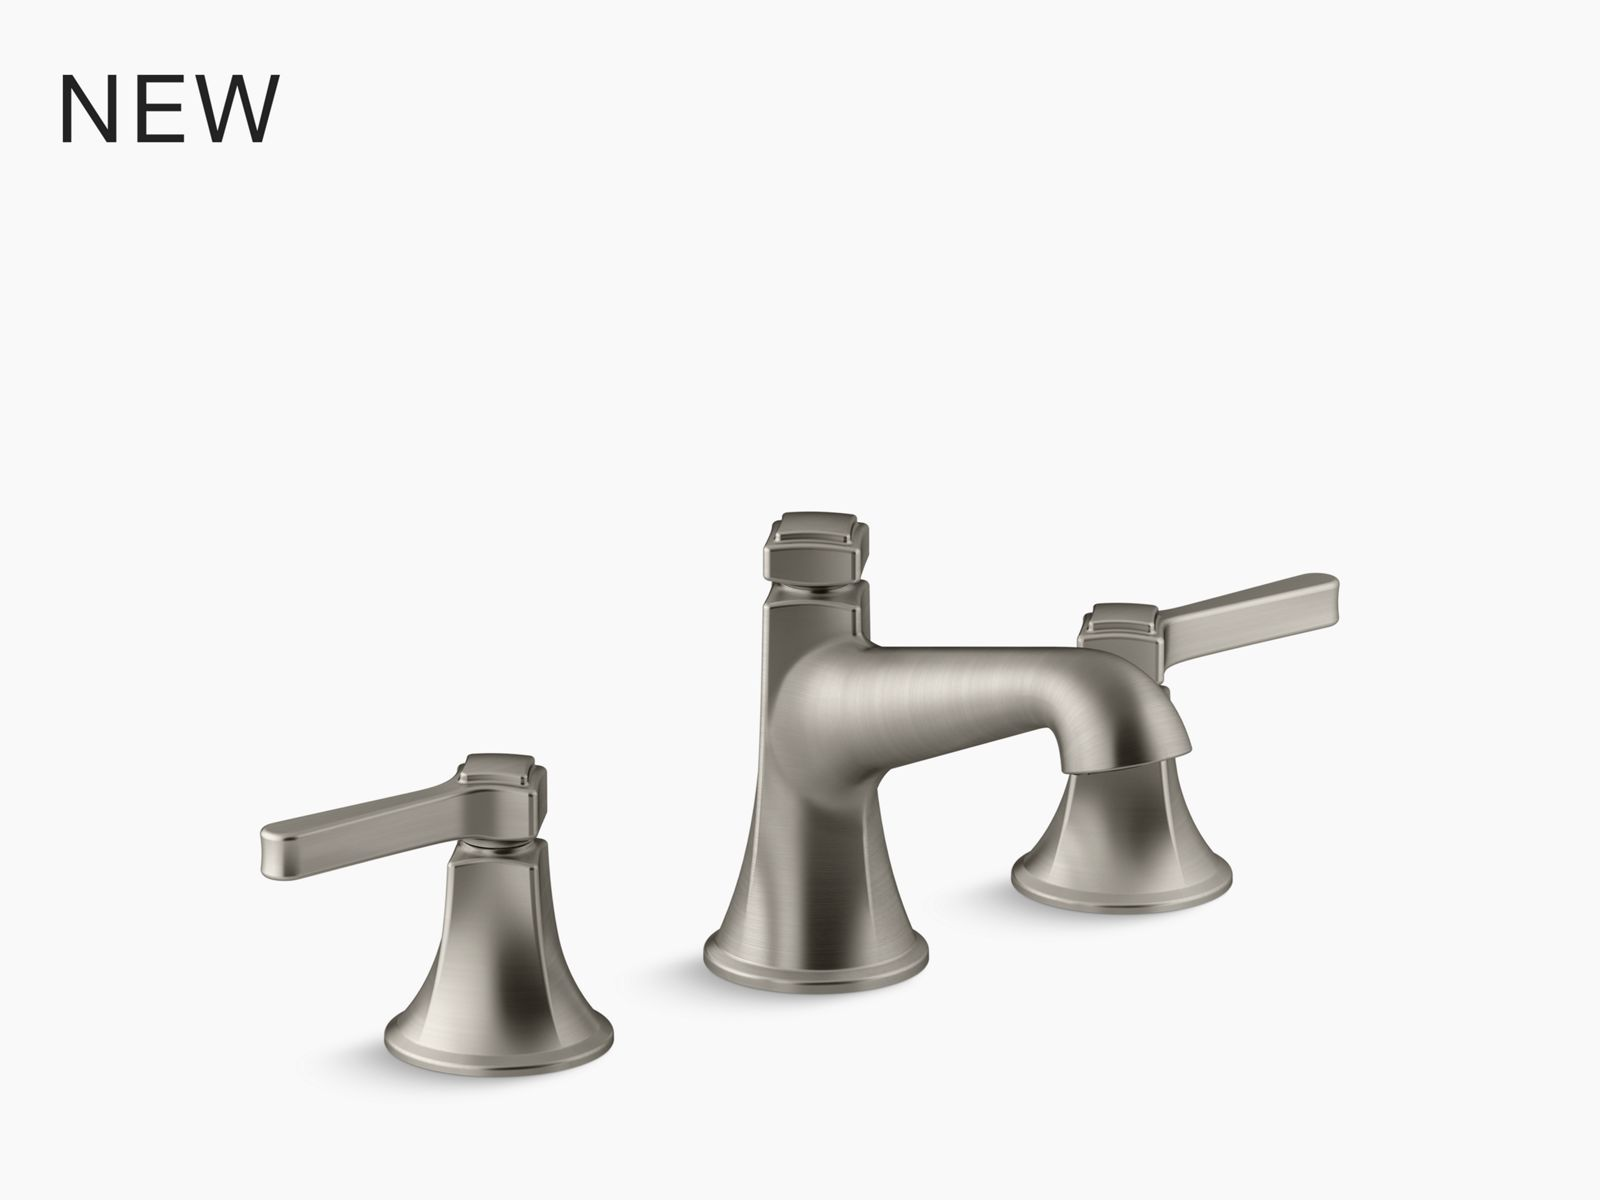 forte 3 hole remote valve kitchen sink faucet with 9 spout with matching finish sidespray